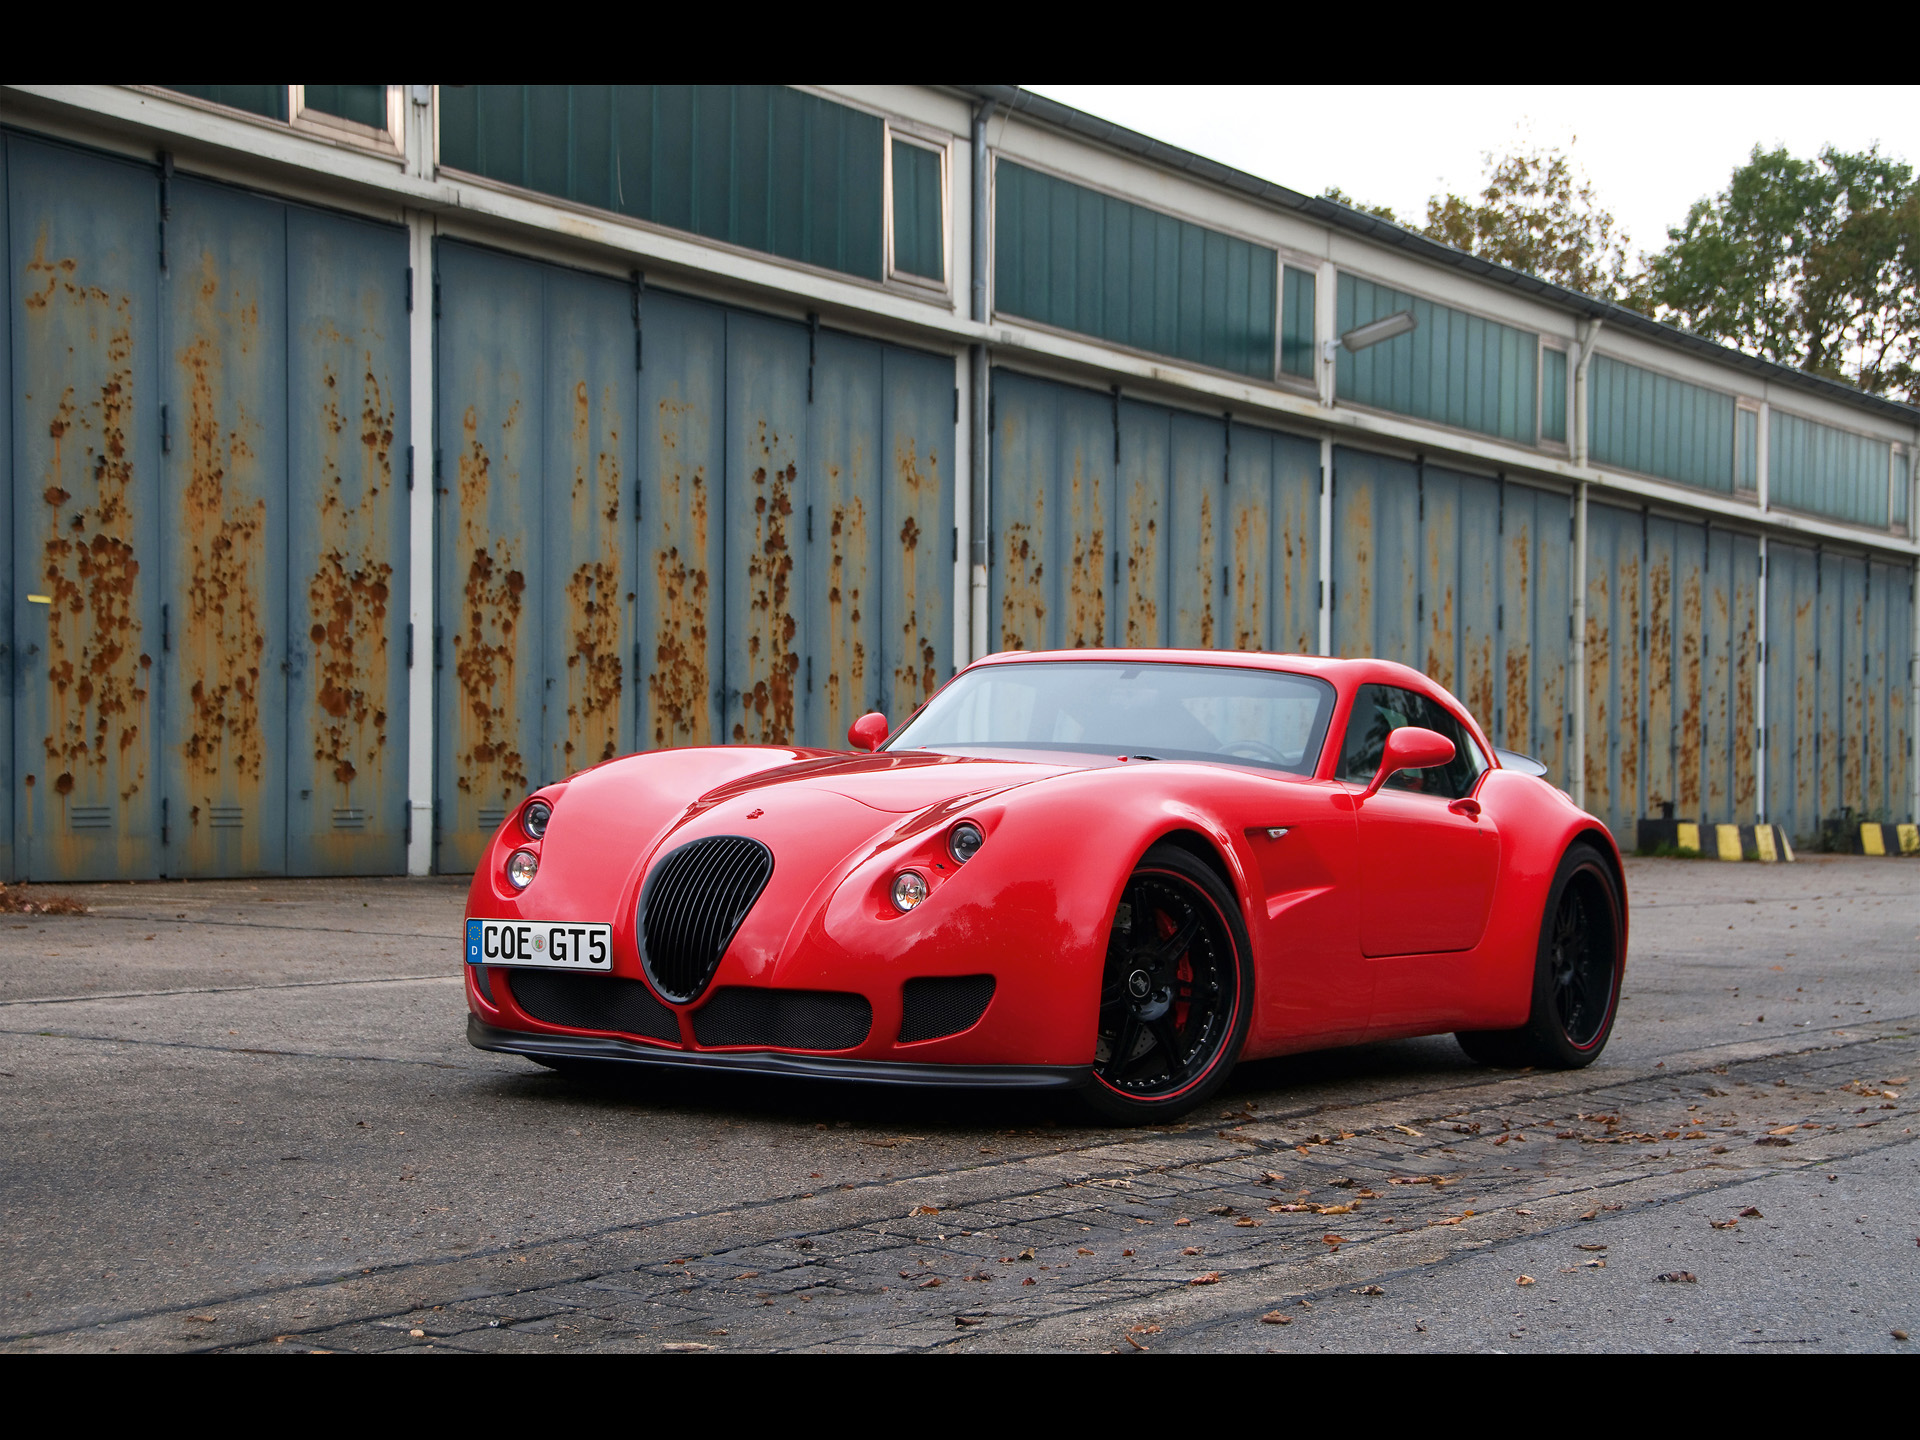 1920x1440 - Wiesmann GT MF5 Wallpapers 25